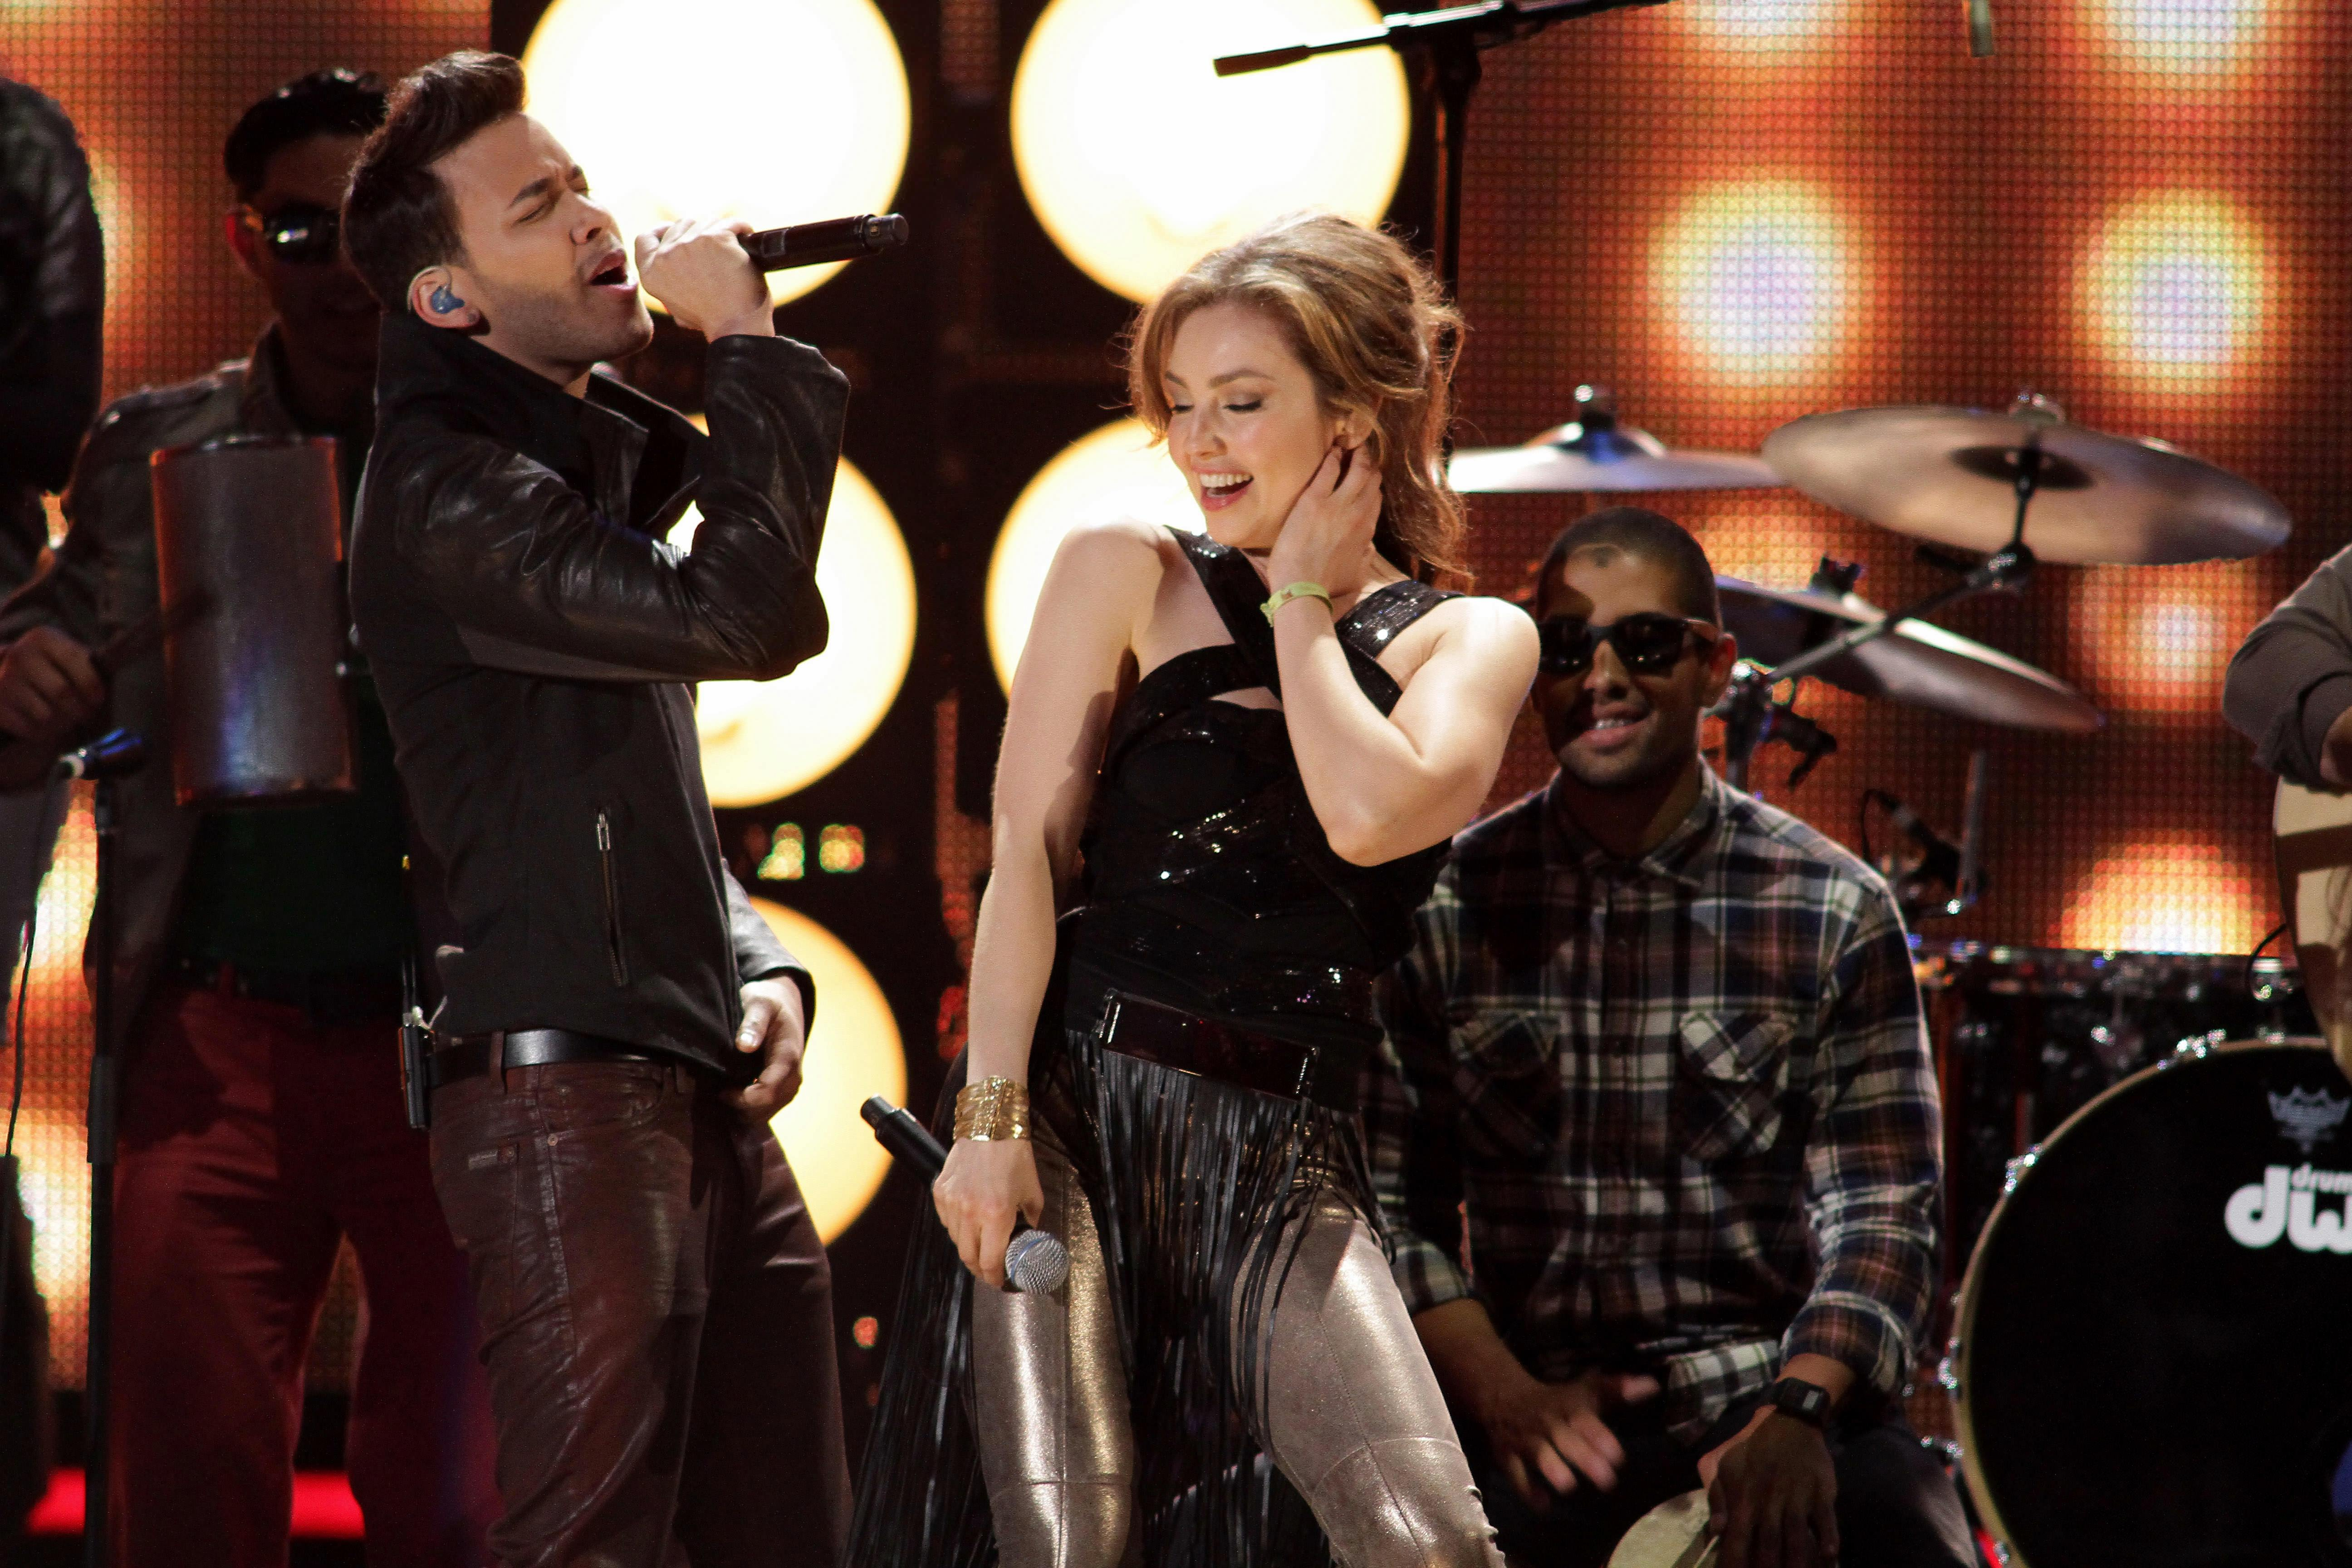 Prince Royce and Thalia